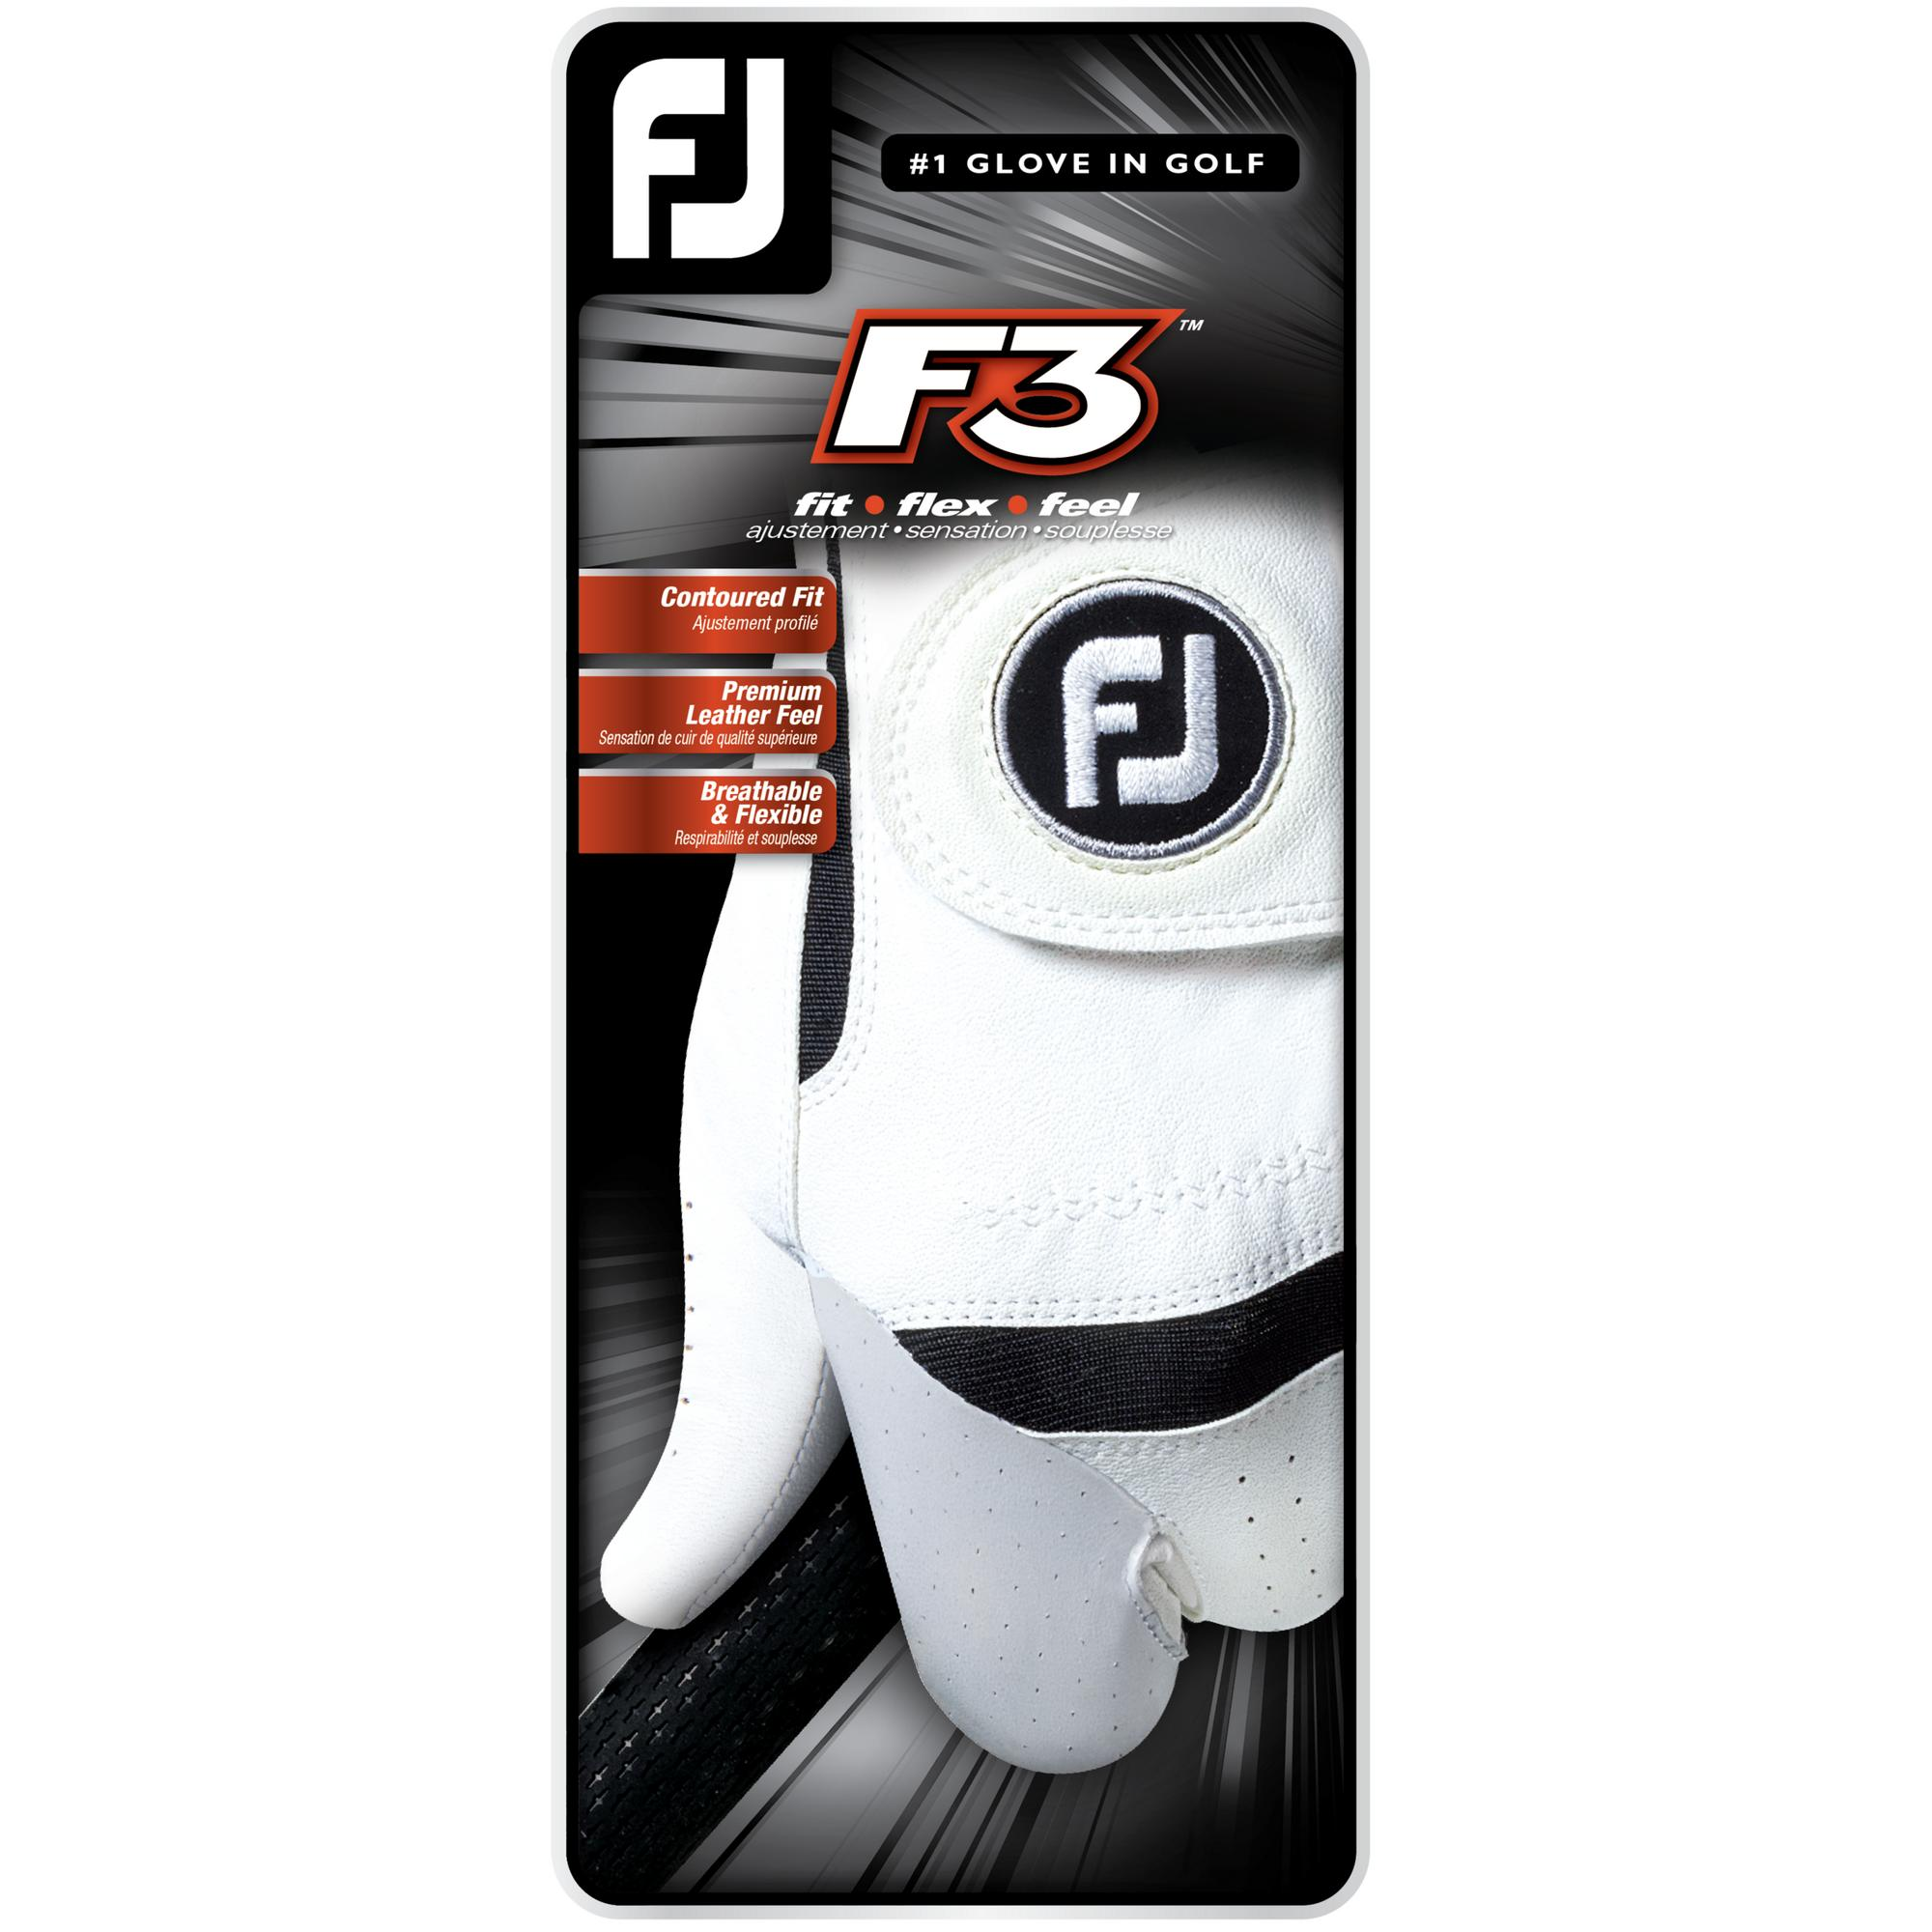 F3 Mens Golf Glove